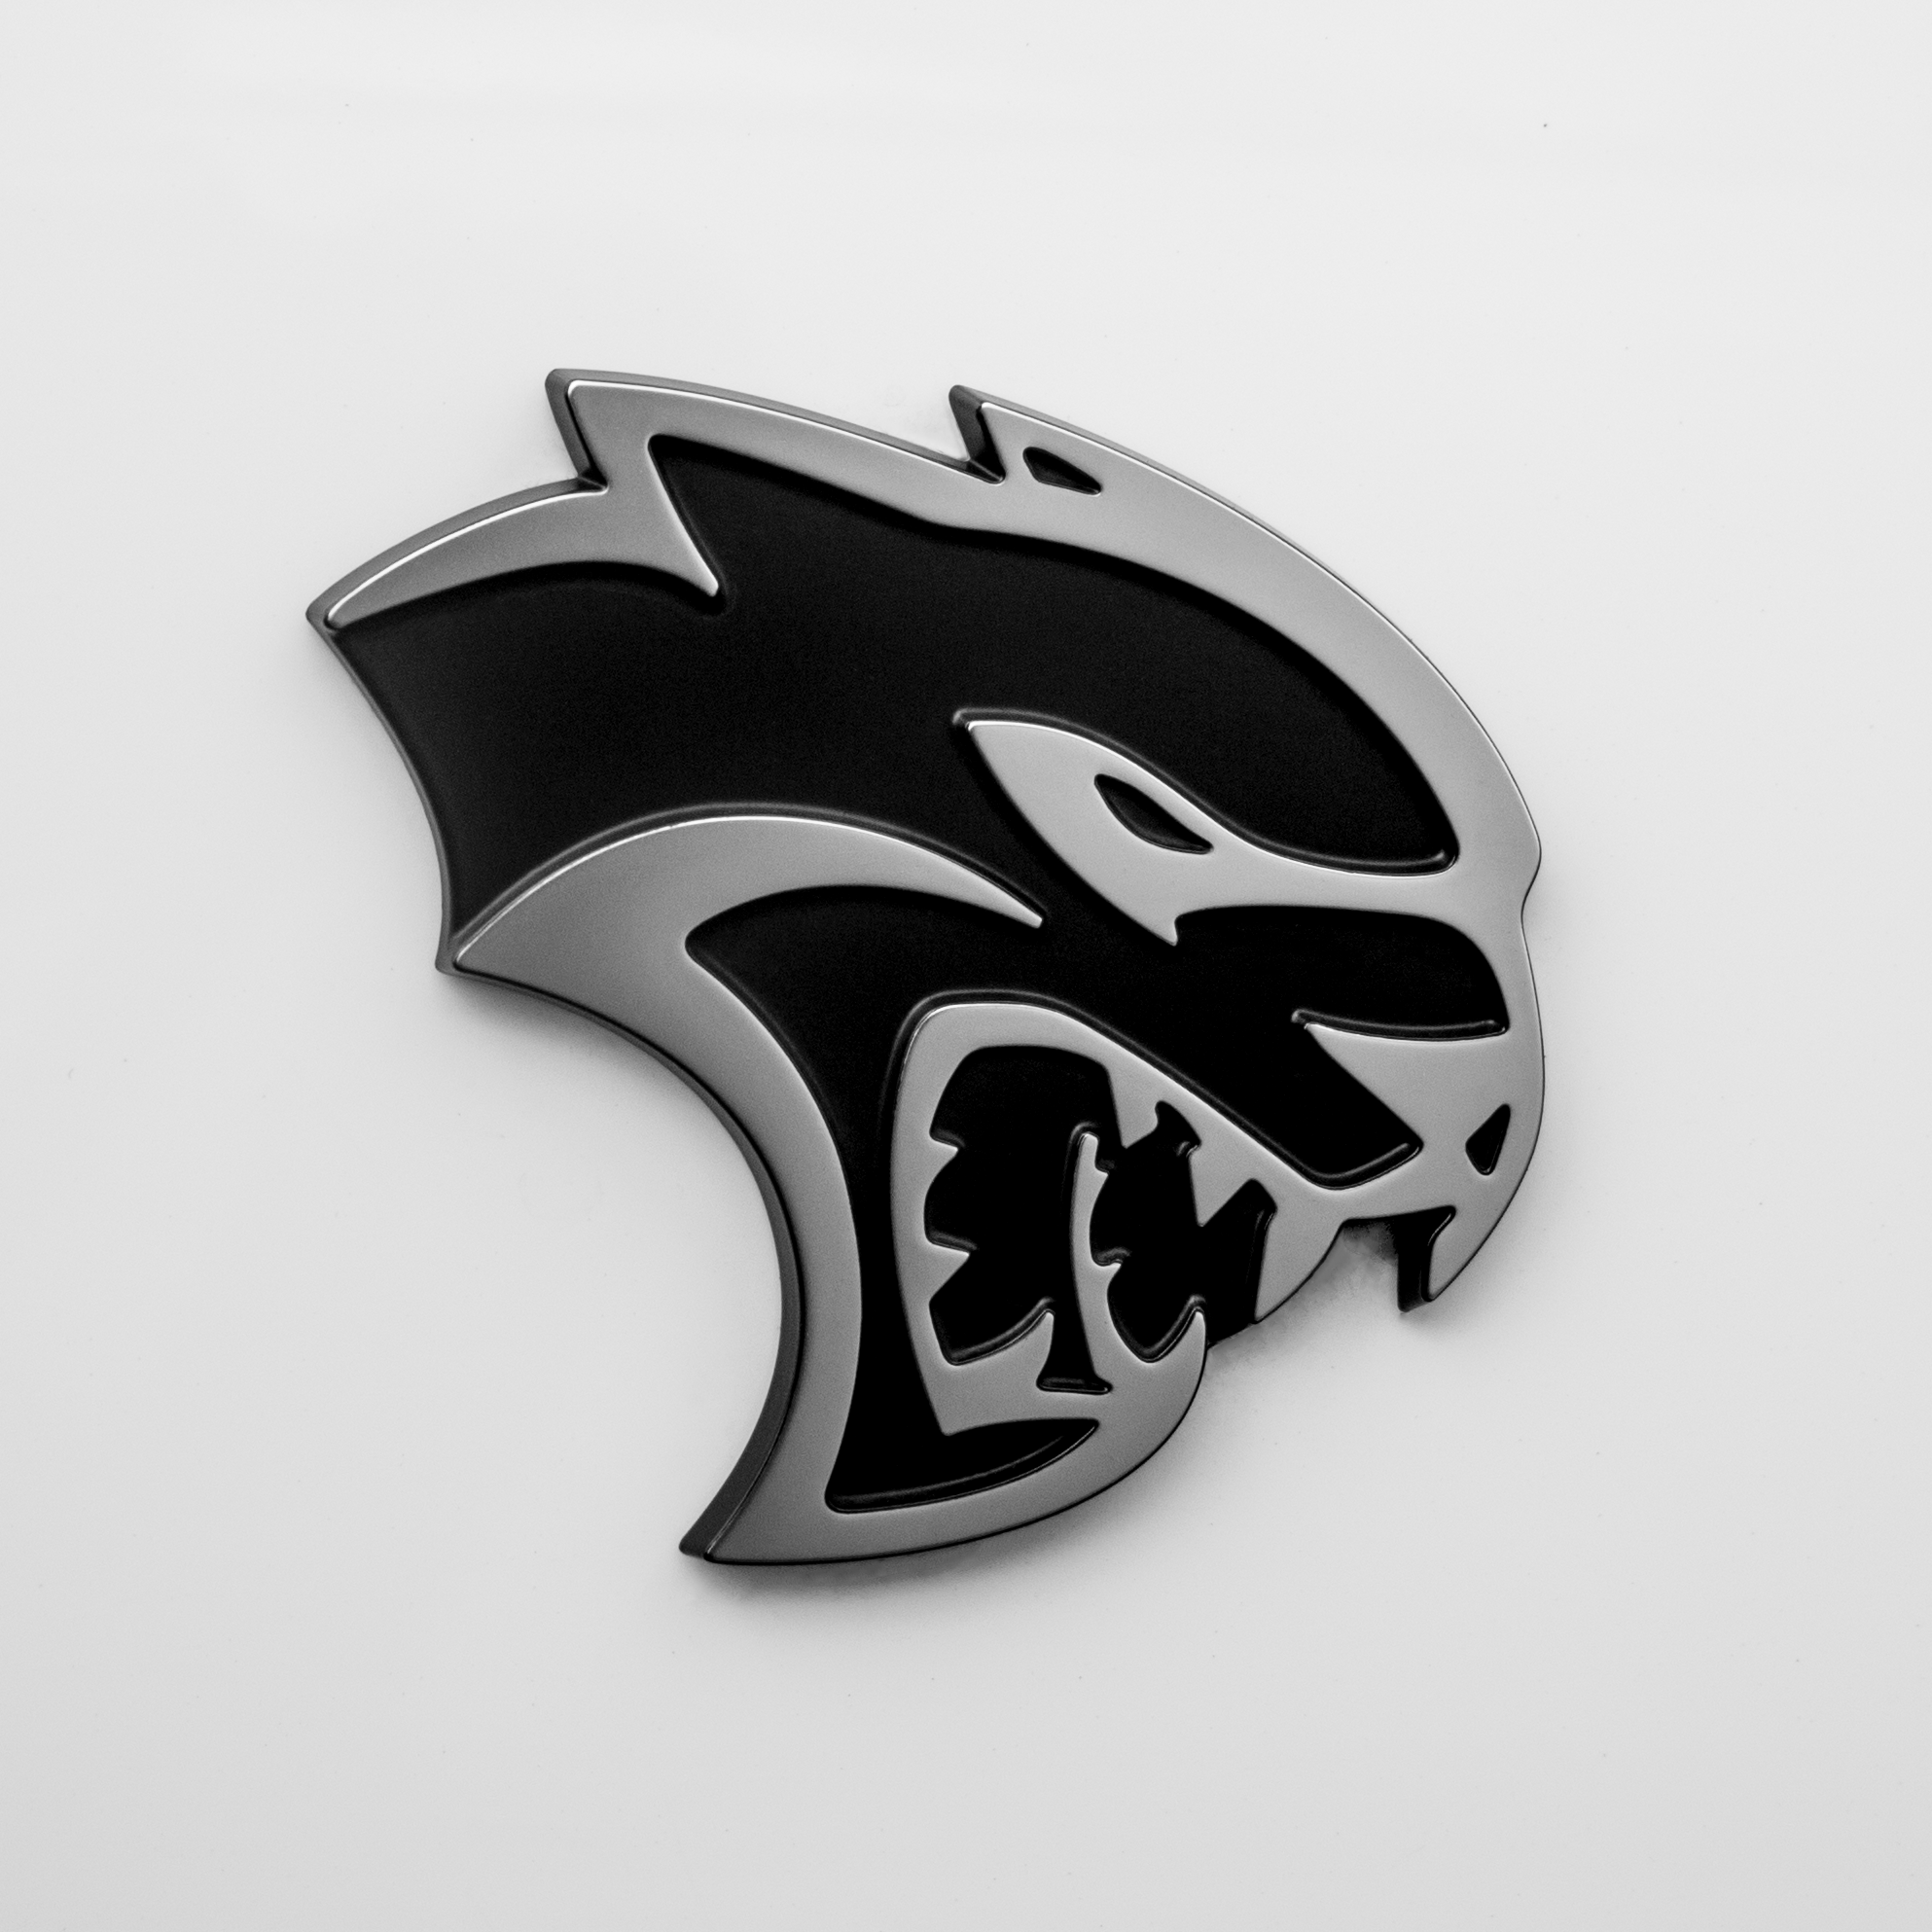 Hellcat Logo On The Side Of The Bagged Dodge Challenger Hellcat Hellcat Challenger Hellcat Car Emblem